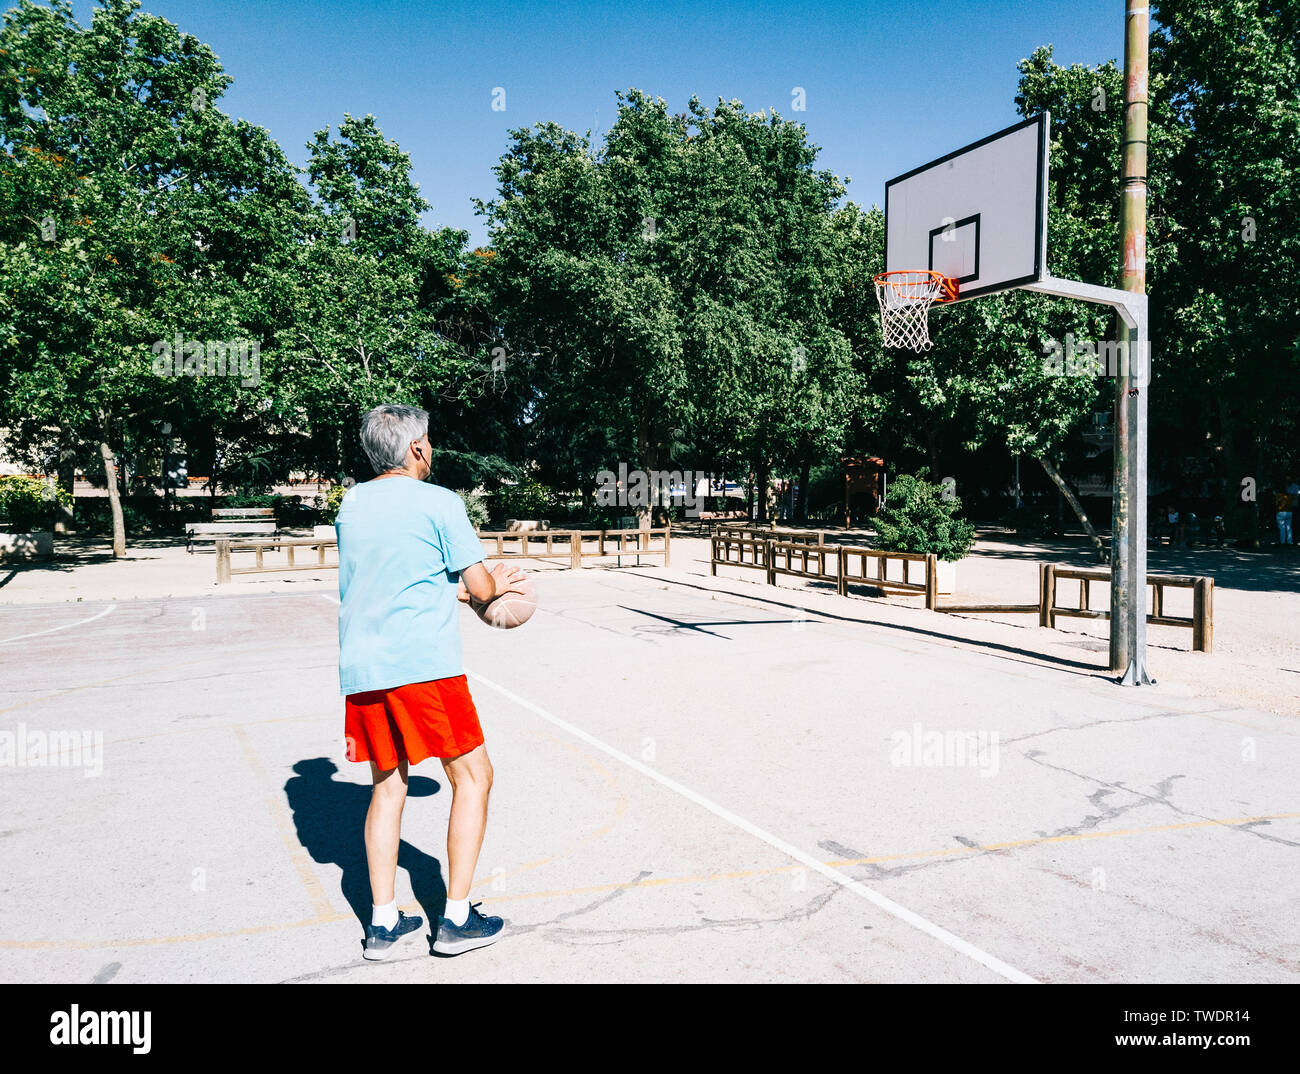 Basketball Courts In Park In Stock Photos & Basketball